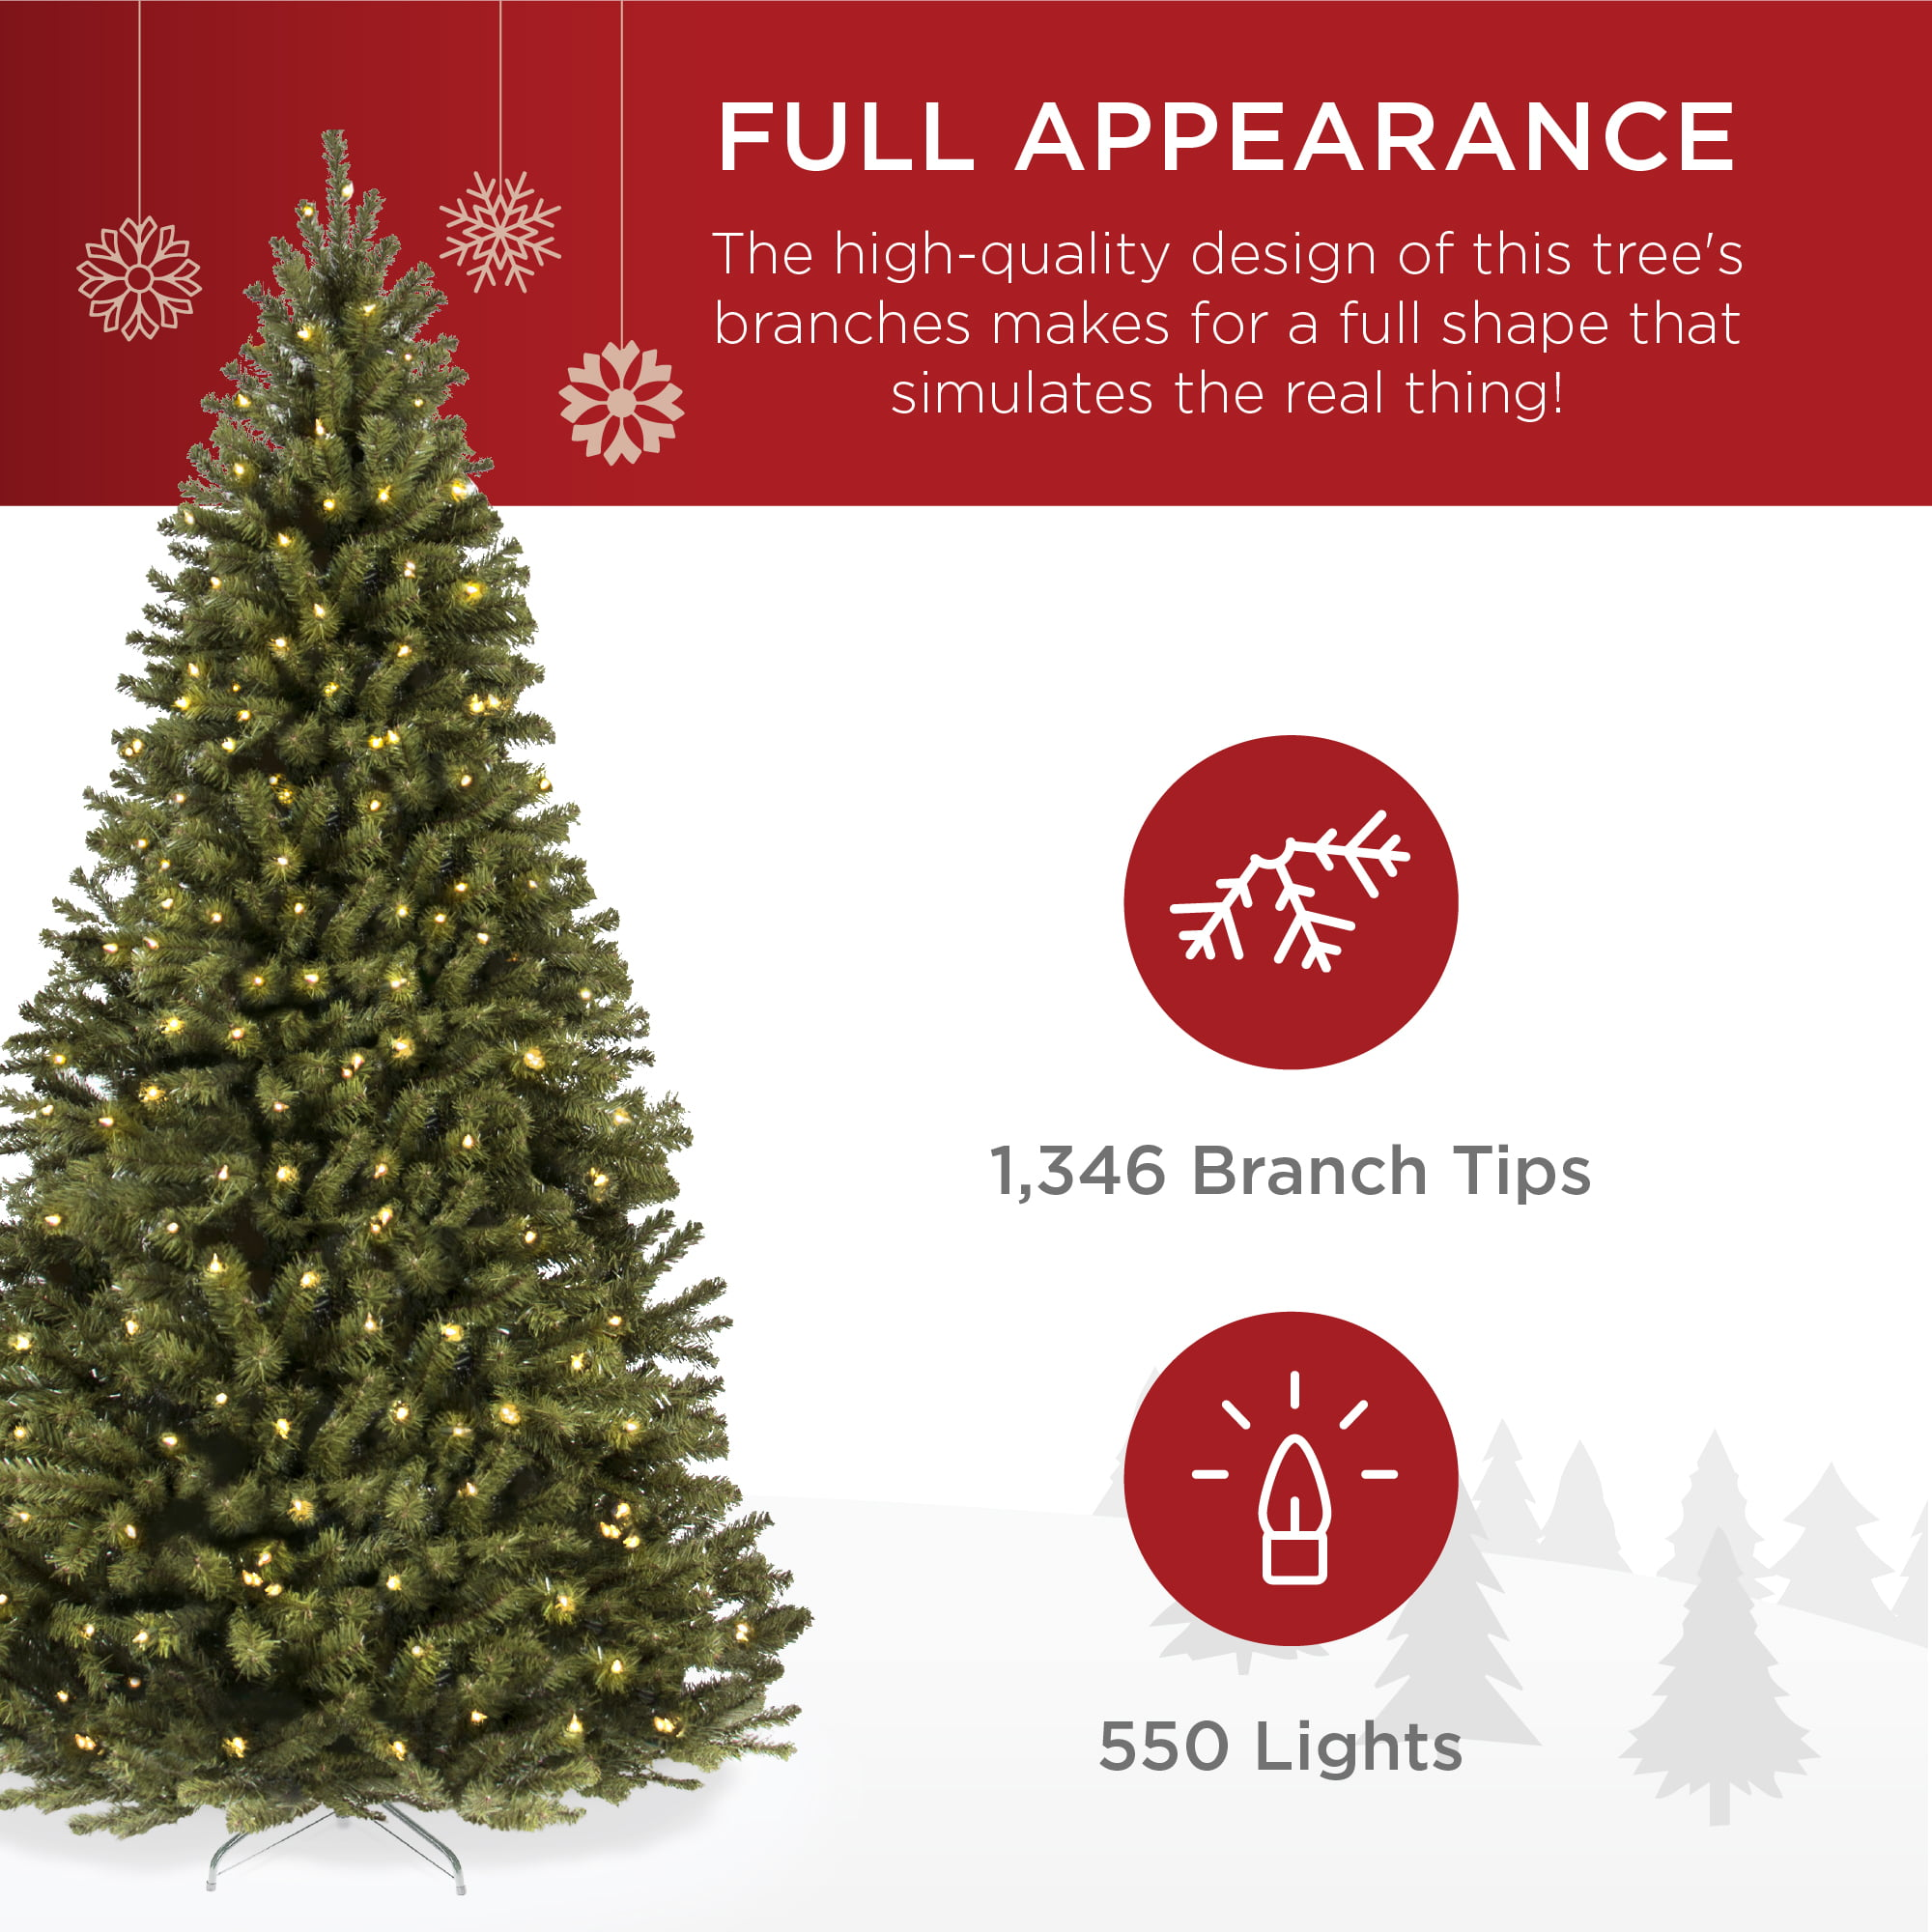 Best Choice Products 7 5ft Pre Lit Spruce Hinged Artificial Christmas Tree W 550 Incandescent Lights Foldable Stand Walmart Com Walmart Com